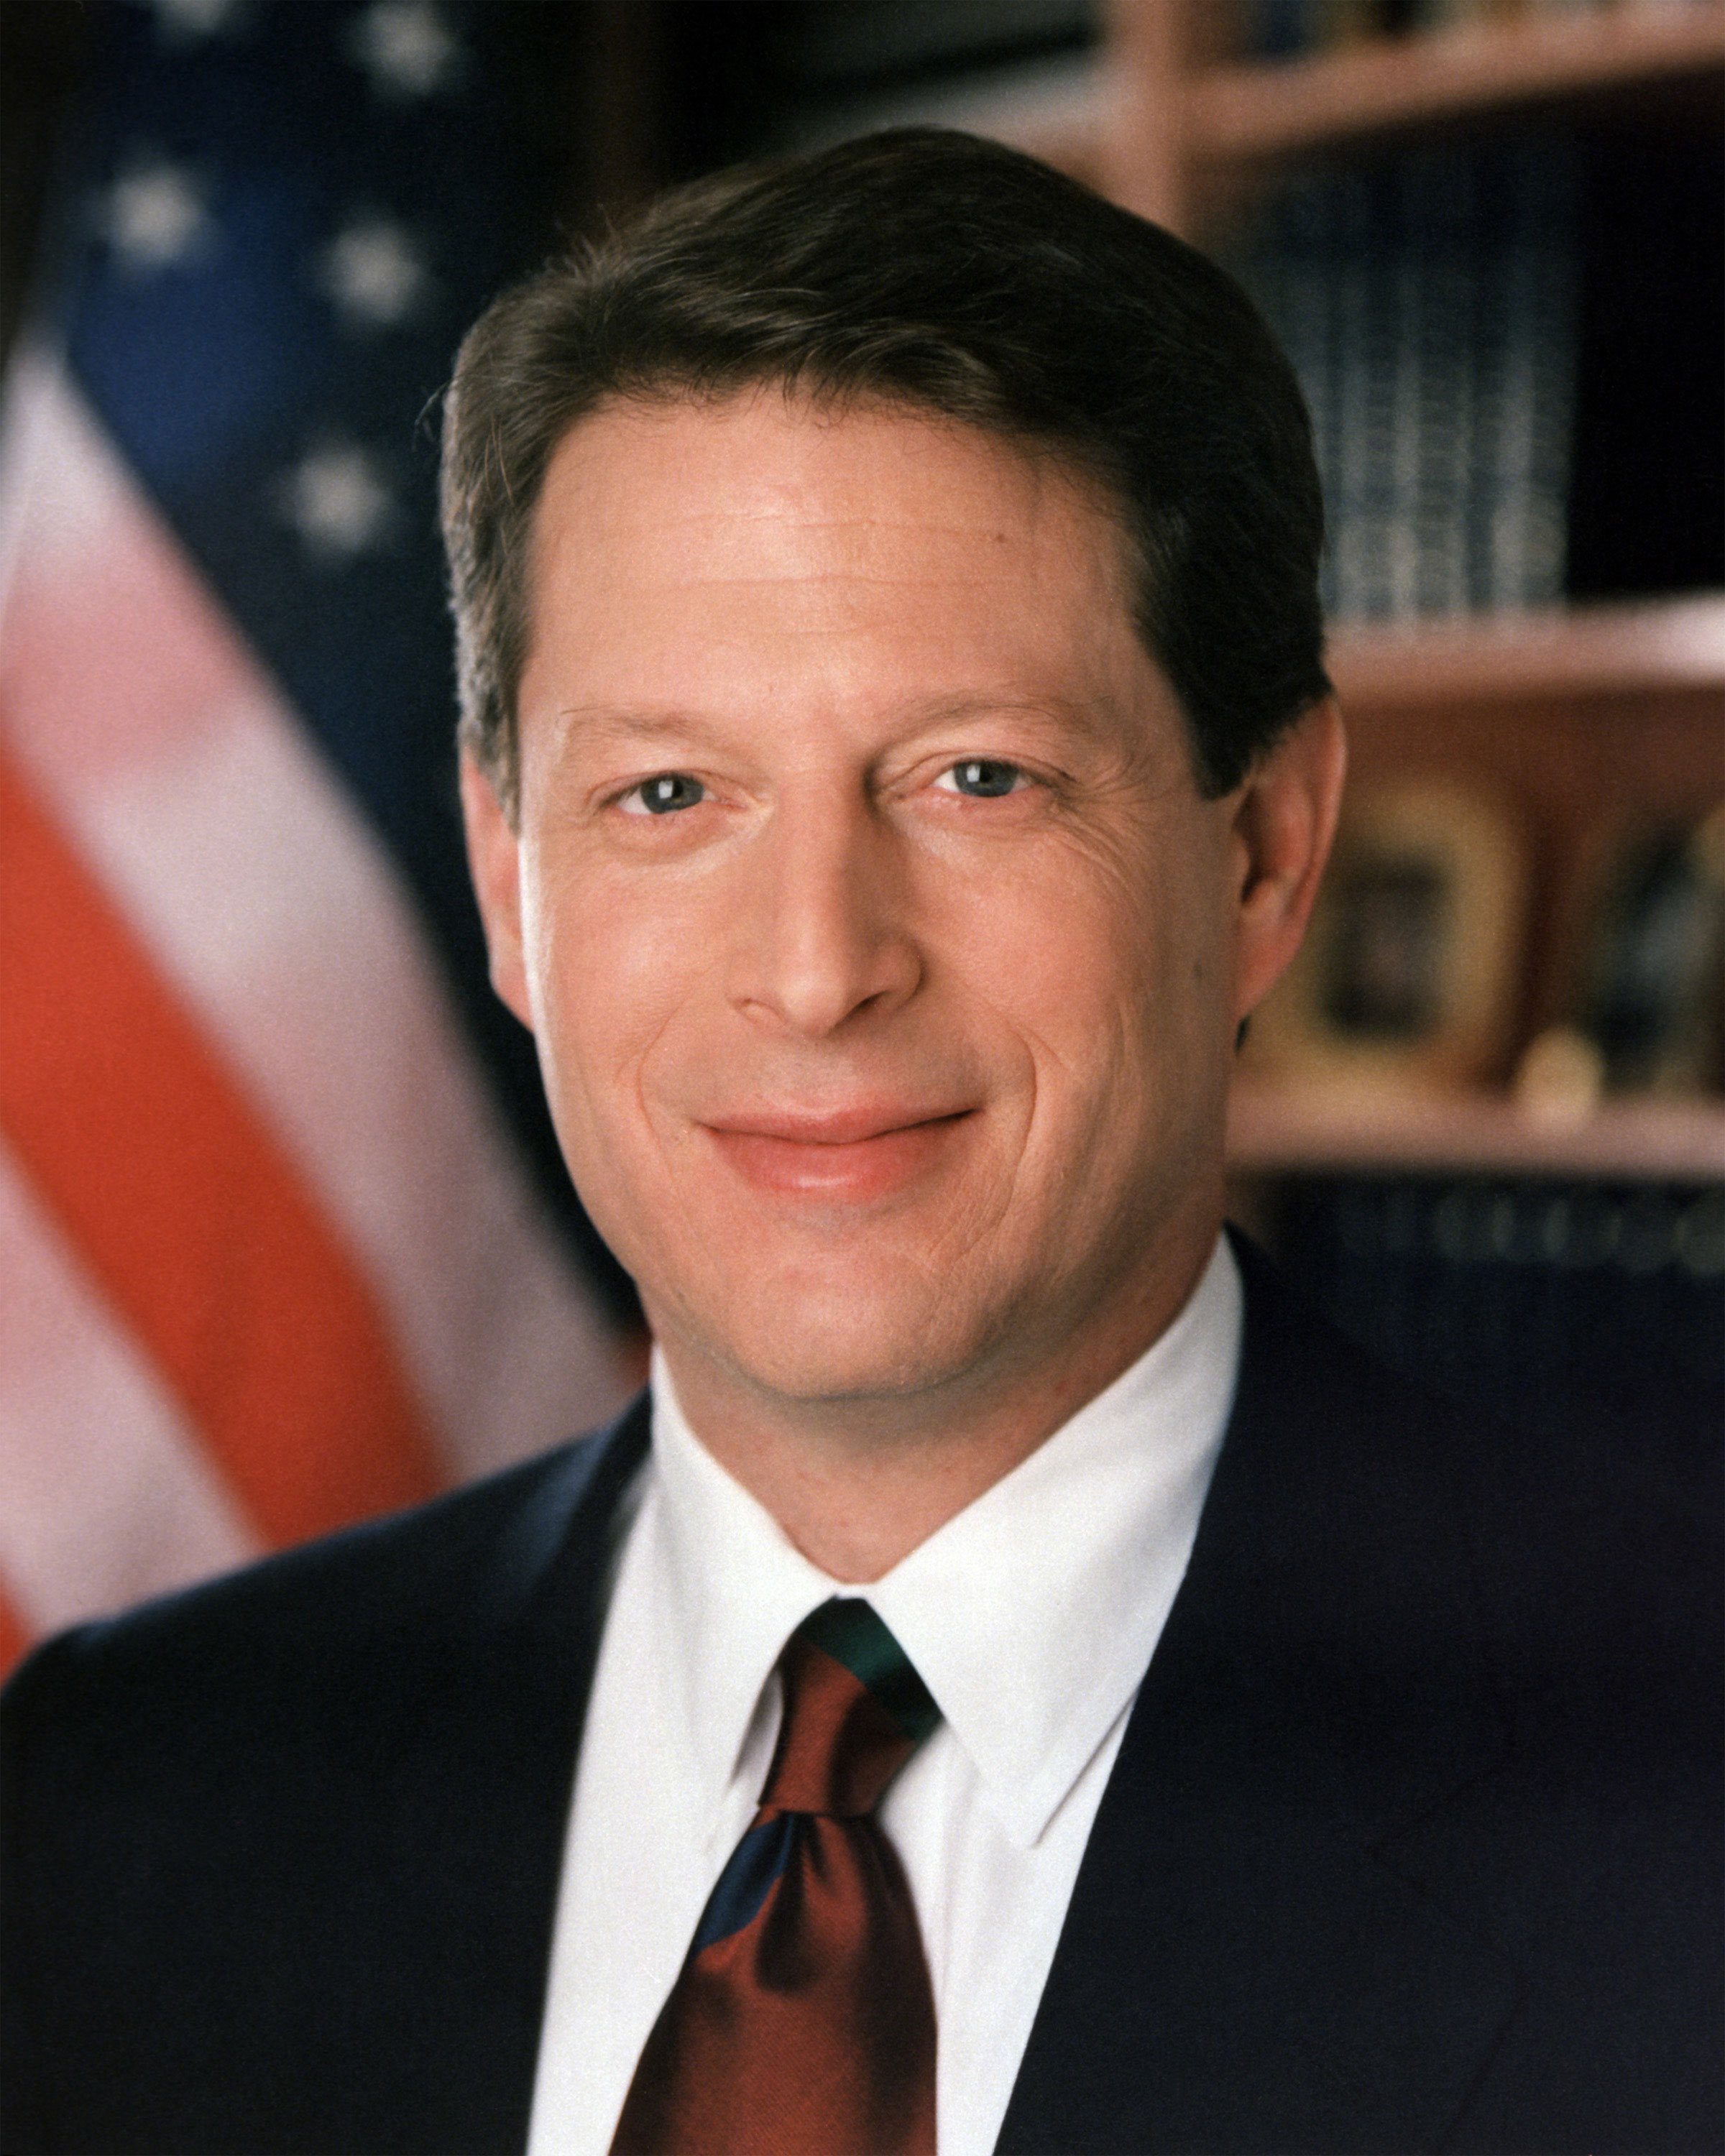 al gores as a candidate for the president of united states Al gore he was chosen as the democratic nominee of the 2000 united states presidential election, but lost the electoral vote to republican candidate george w bush because of florida and the us supreme court ruling a 5-4 favor of bush.